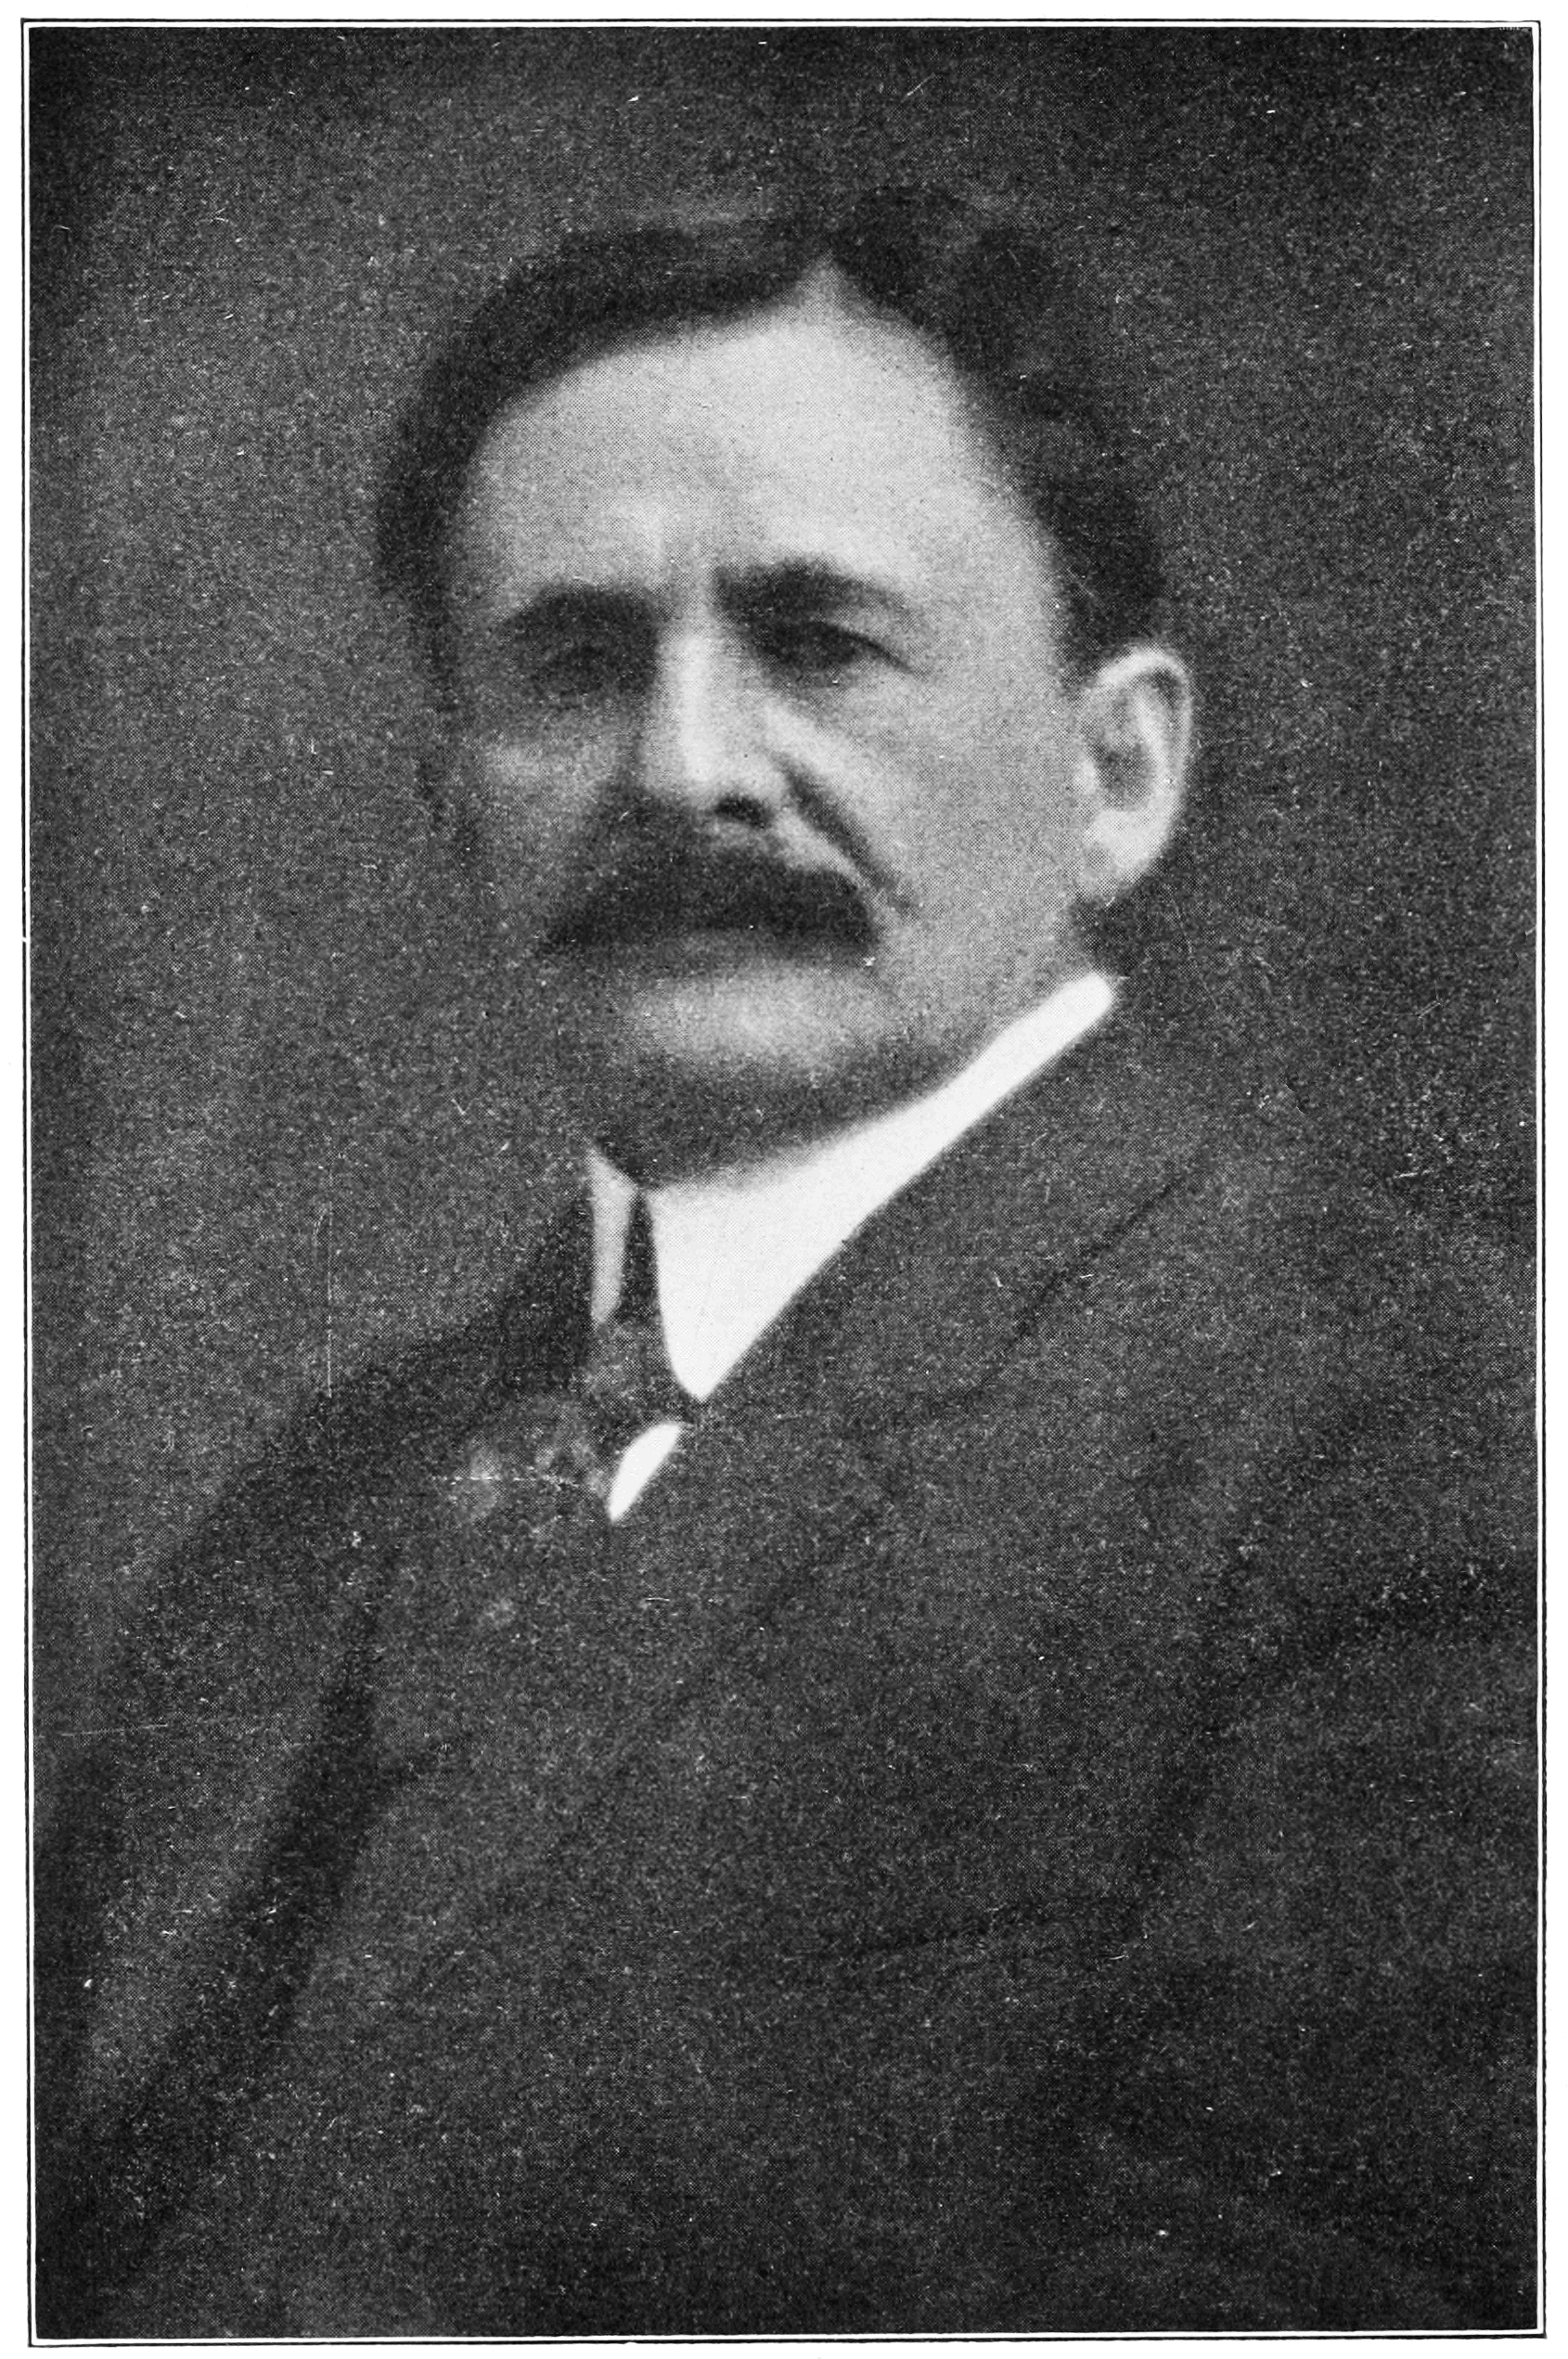 PSM V76 D206 Albert Abraham Michelson.png